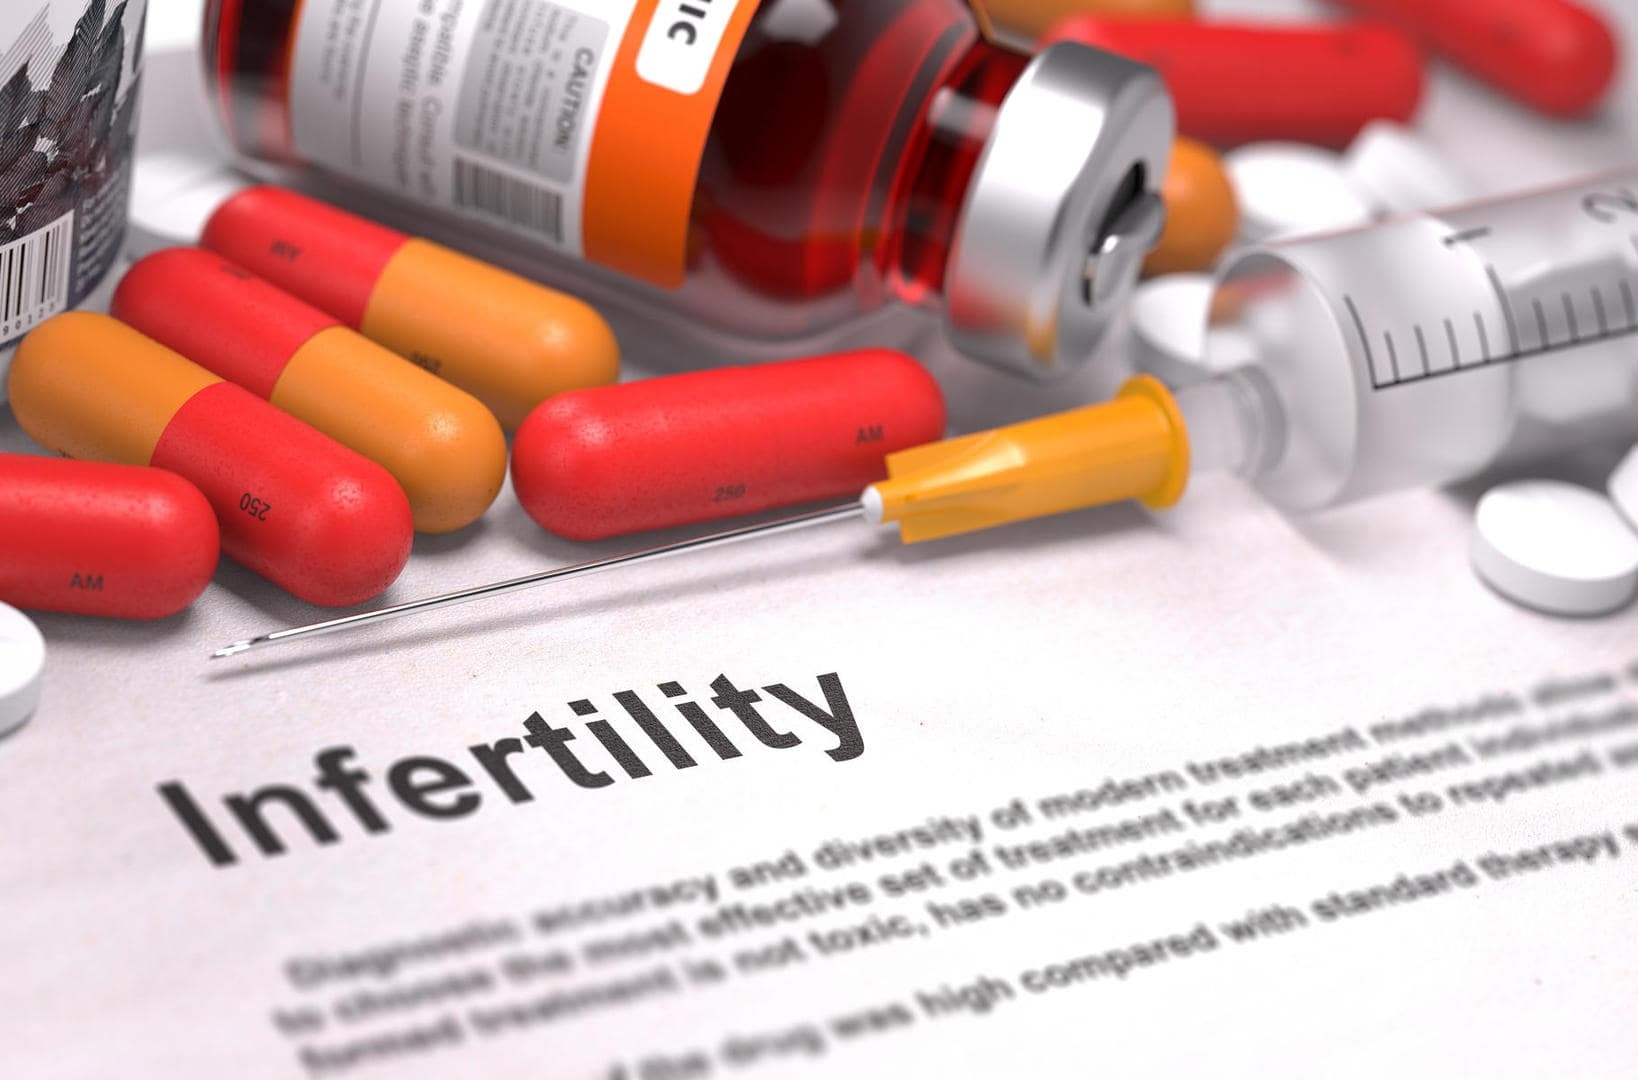 Global Infertility Treatment Market Projected to Reach USD 28,059.4 Mn by the end of 2025 | Growing at a CAGR of 9.4% during 2018-2025